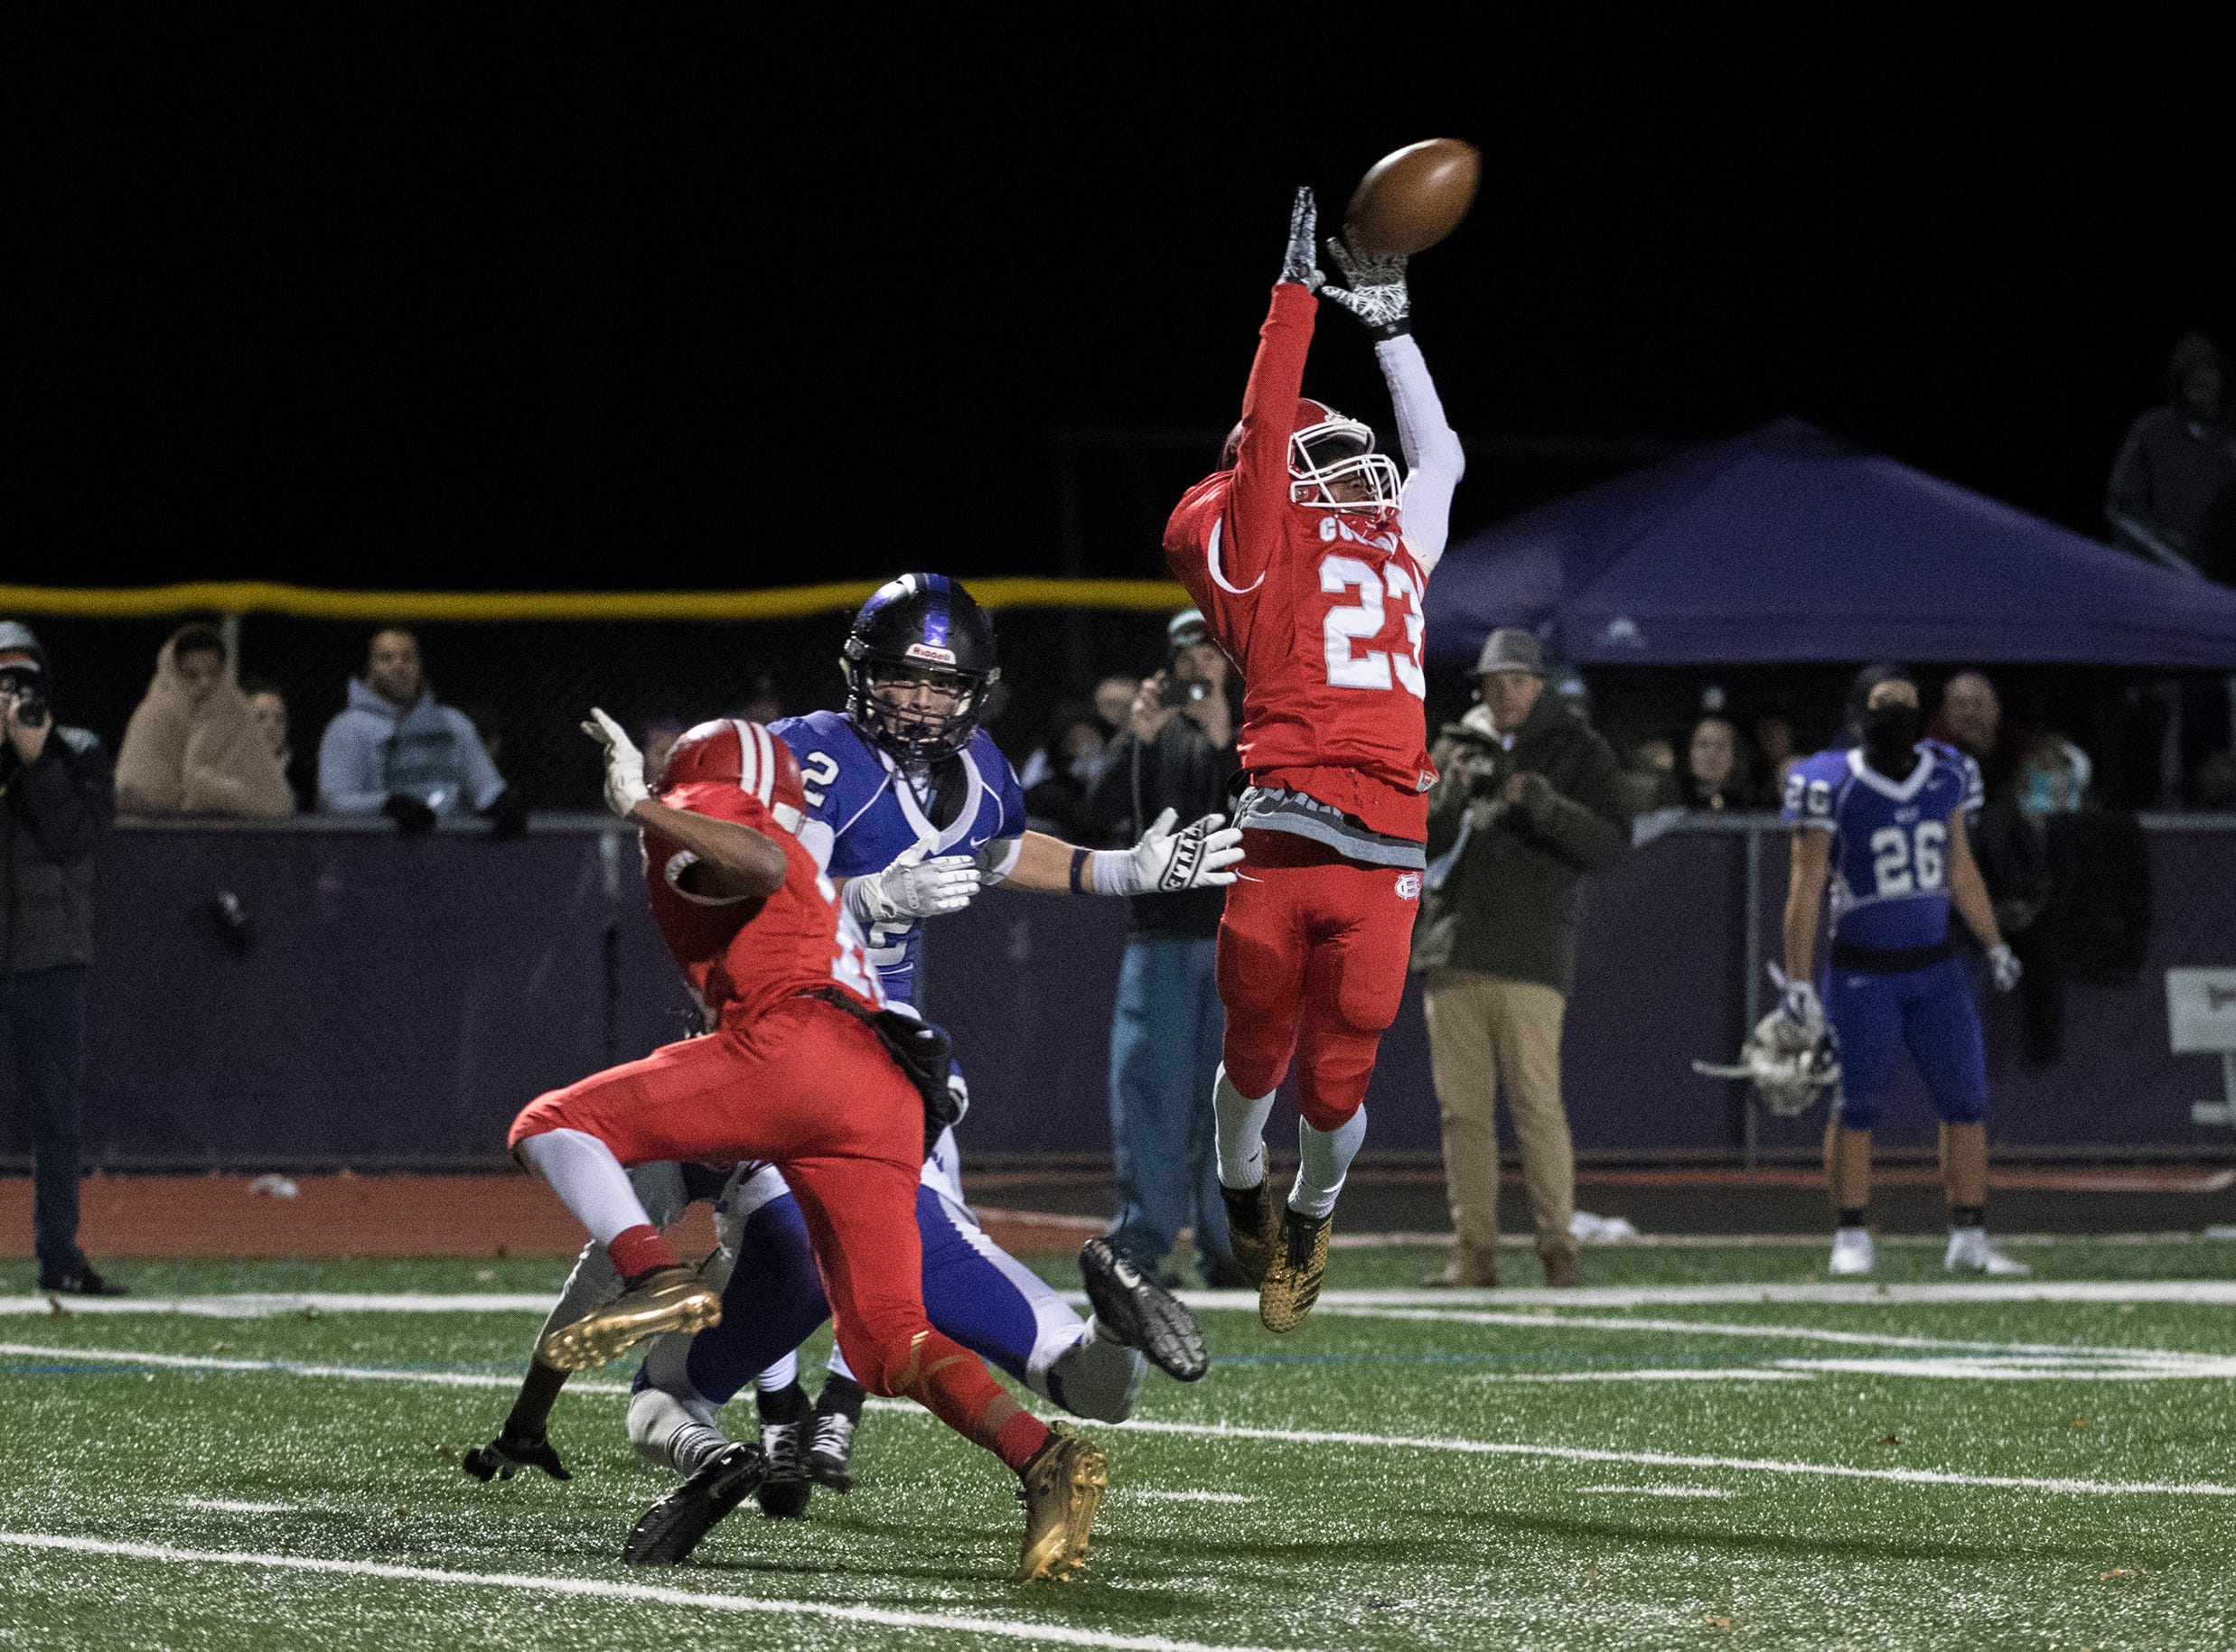 East's Joshua Jean-Baptiste (23) nearly picks off a pass during an annual East-West game Wednesday, Nov. 21, 2018 at Cherry Hill West High School in Cherry Hill, N.J. West won 22-7.